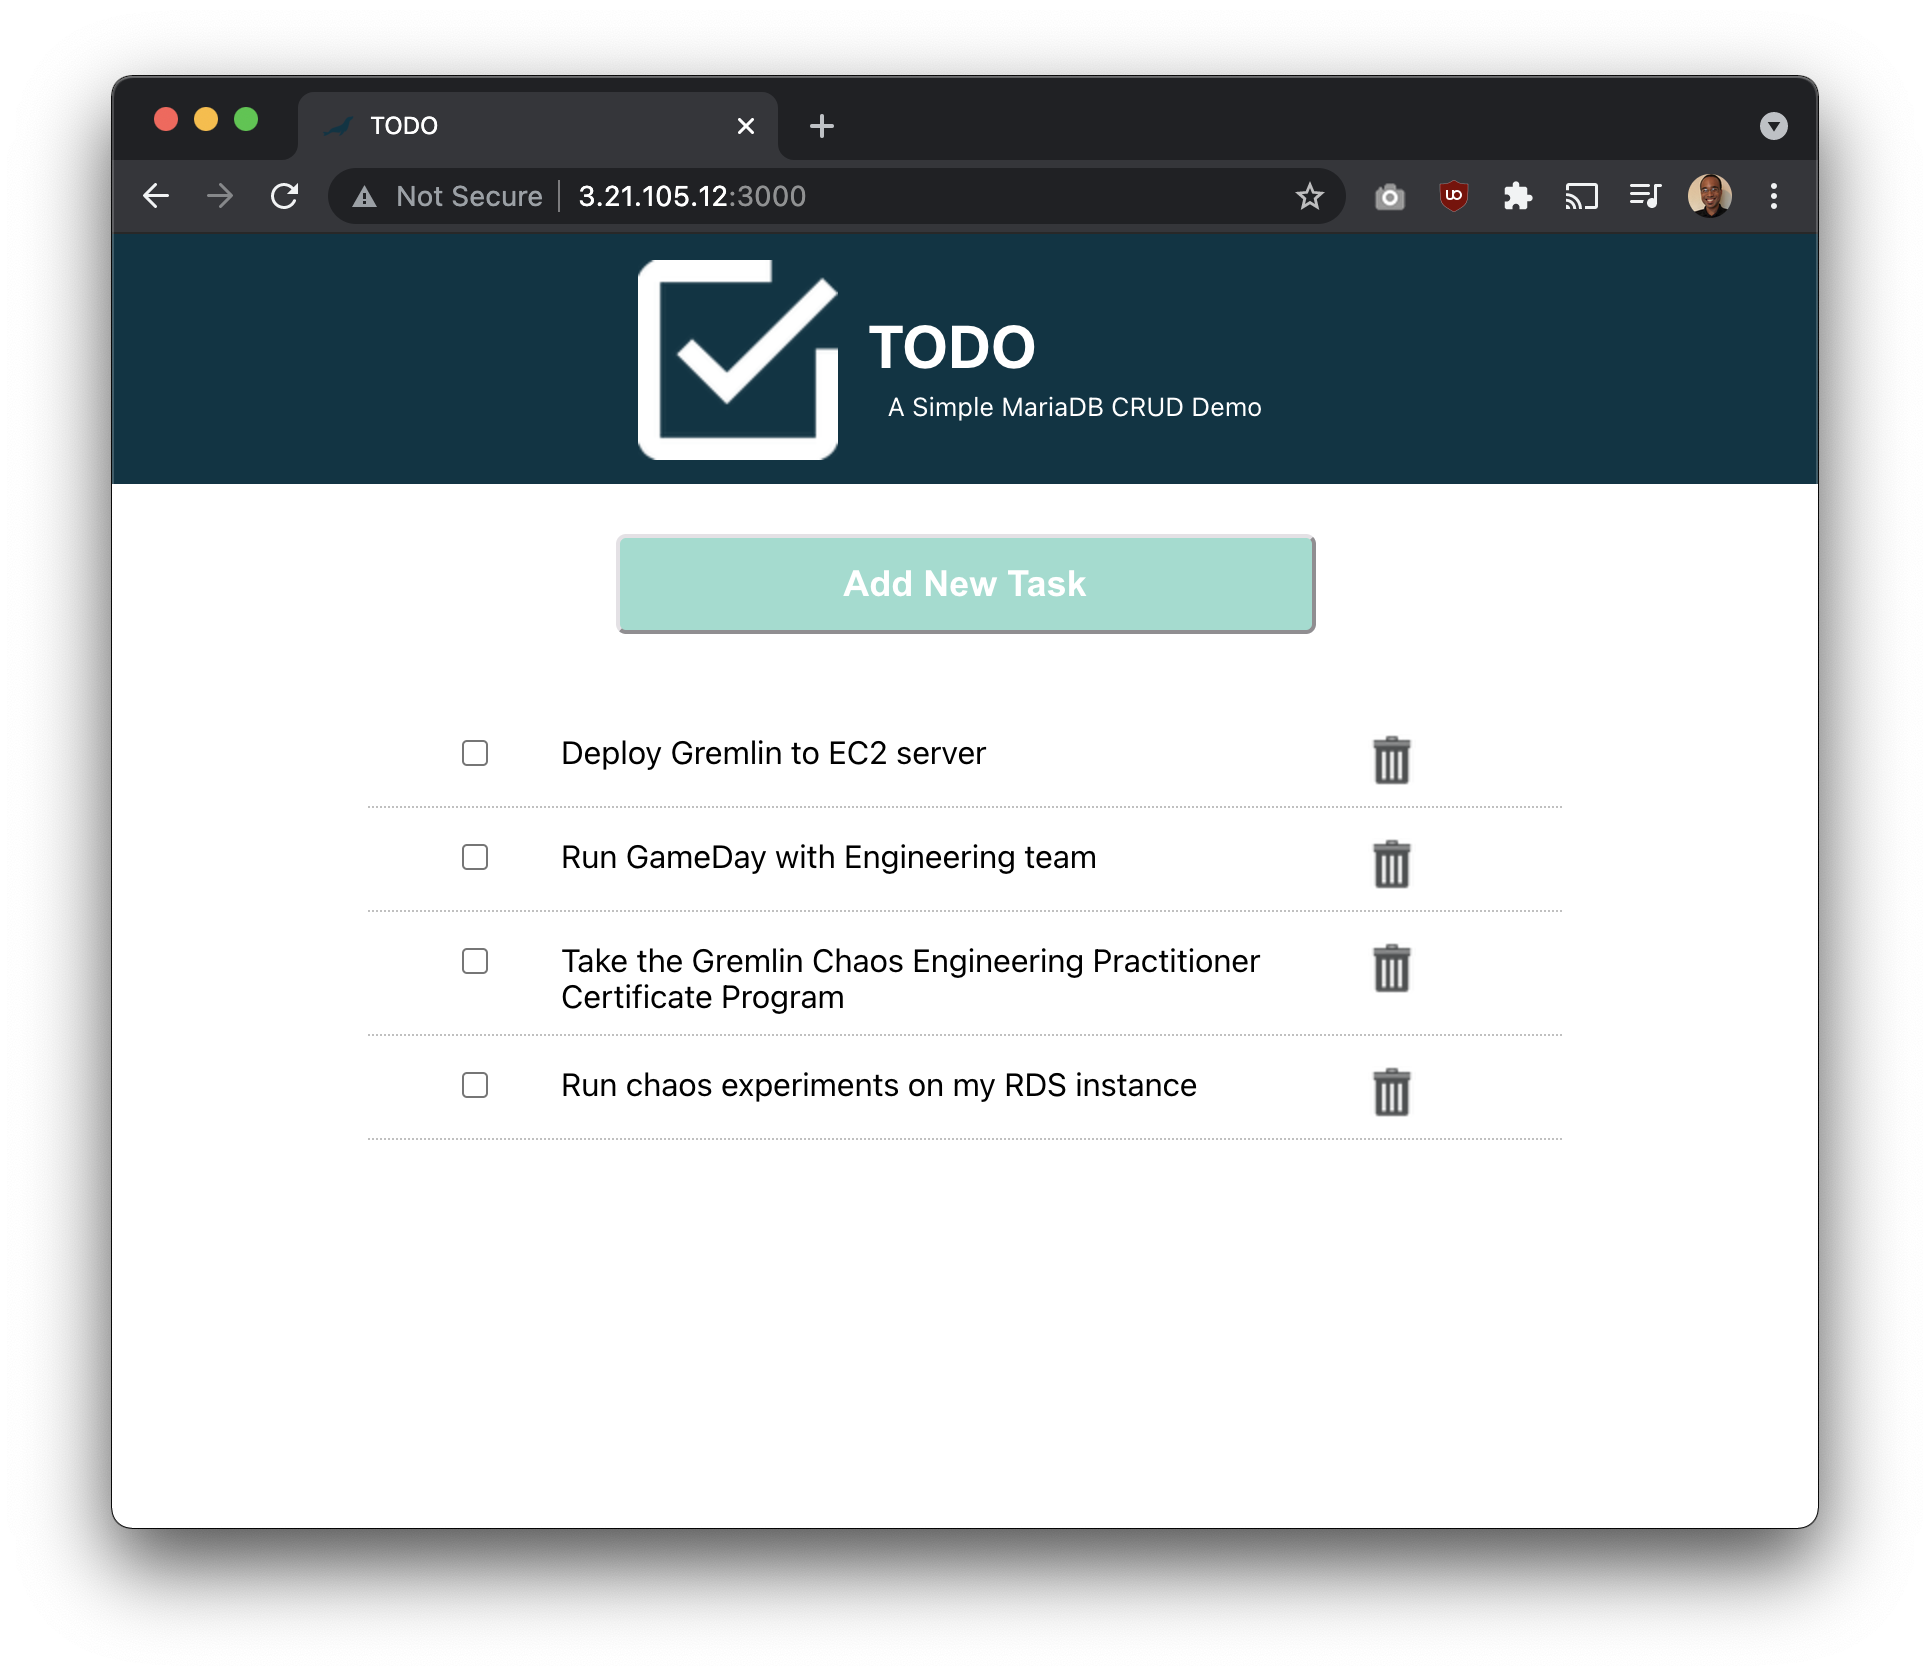 TODO application in a web browser